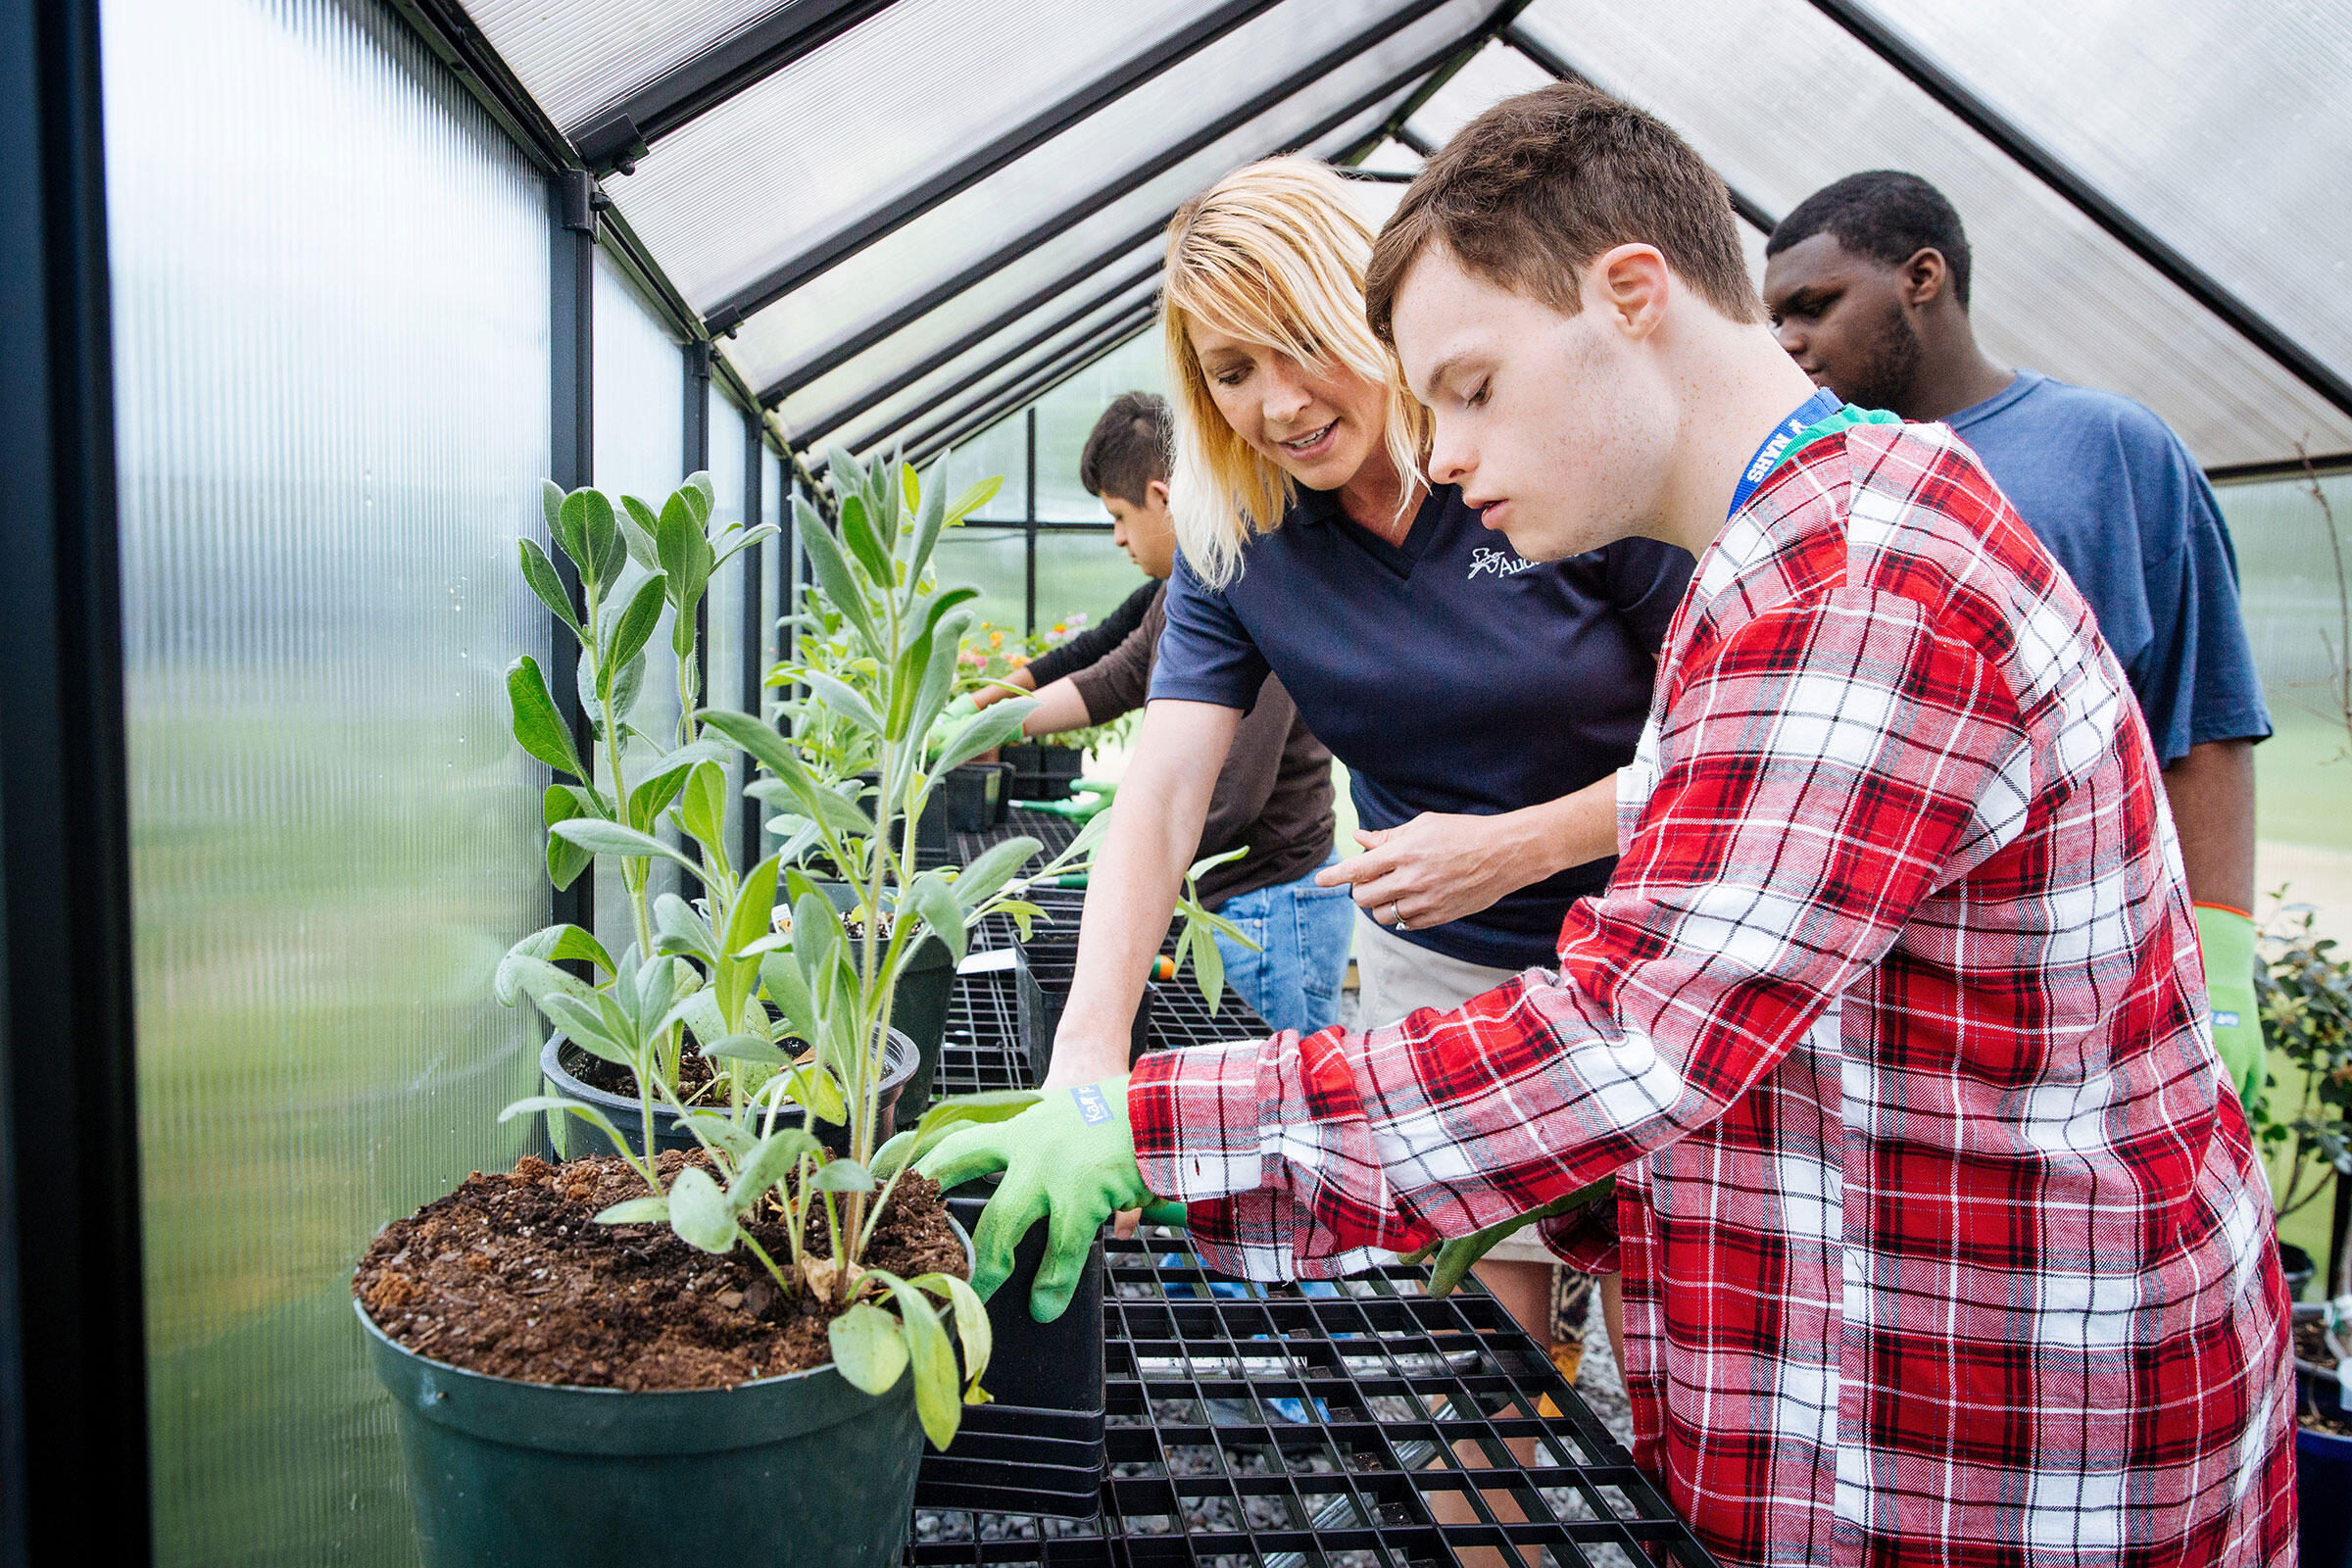 Barron helps Mahon re-pot plants at Norristown Area High School. Mahon is part of the job skills program, which has incorporated the greenhouse into its lesson plans. Rachel Wisniewski